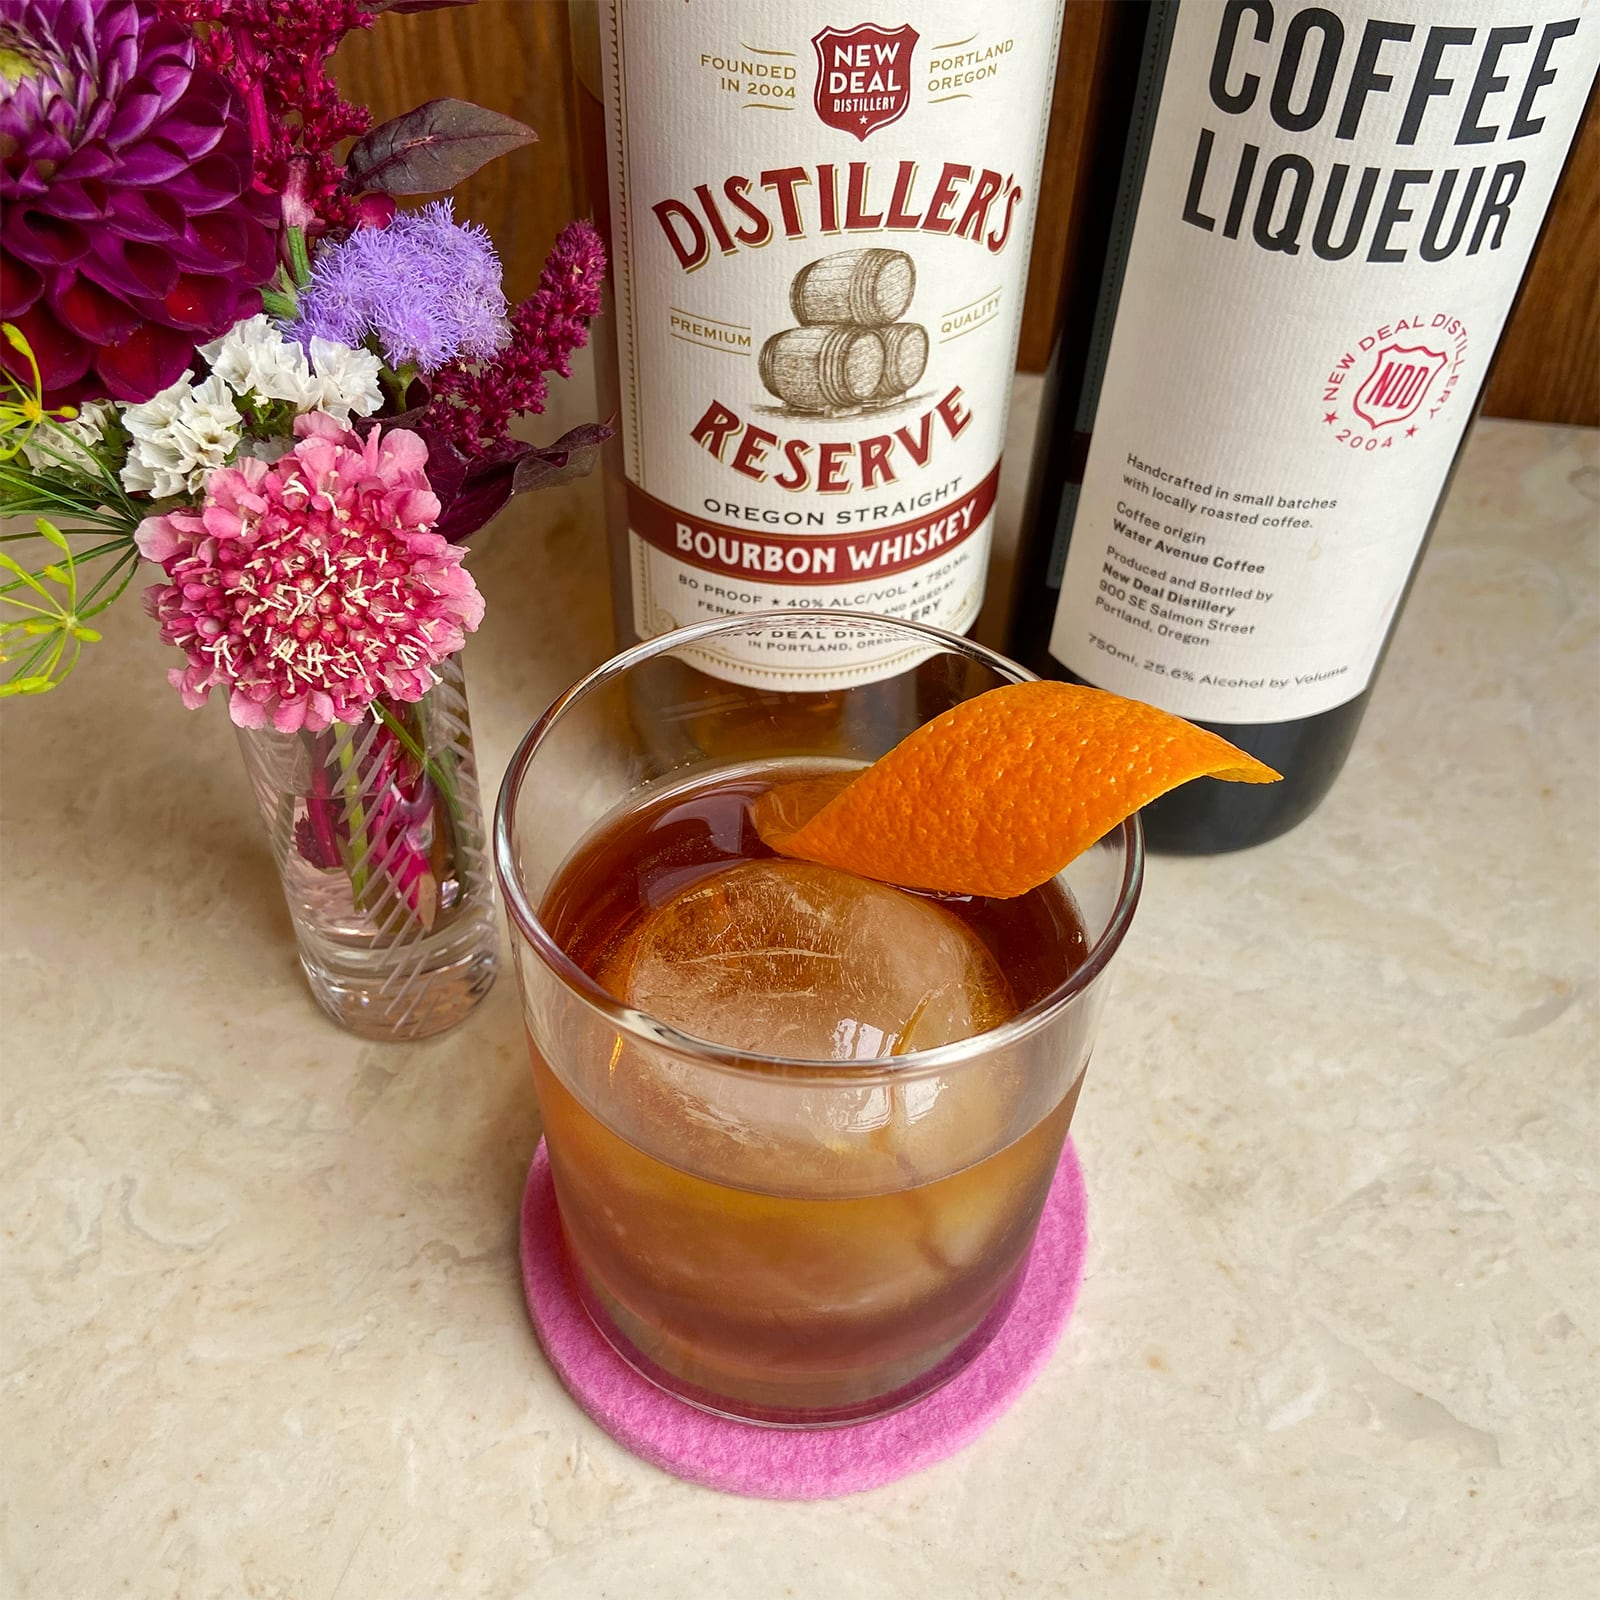 New Deal Revolver Cocktail Recipe